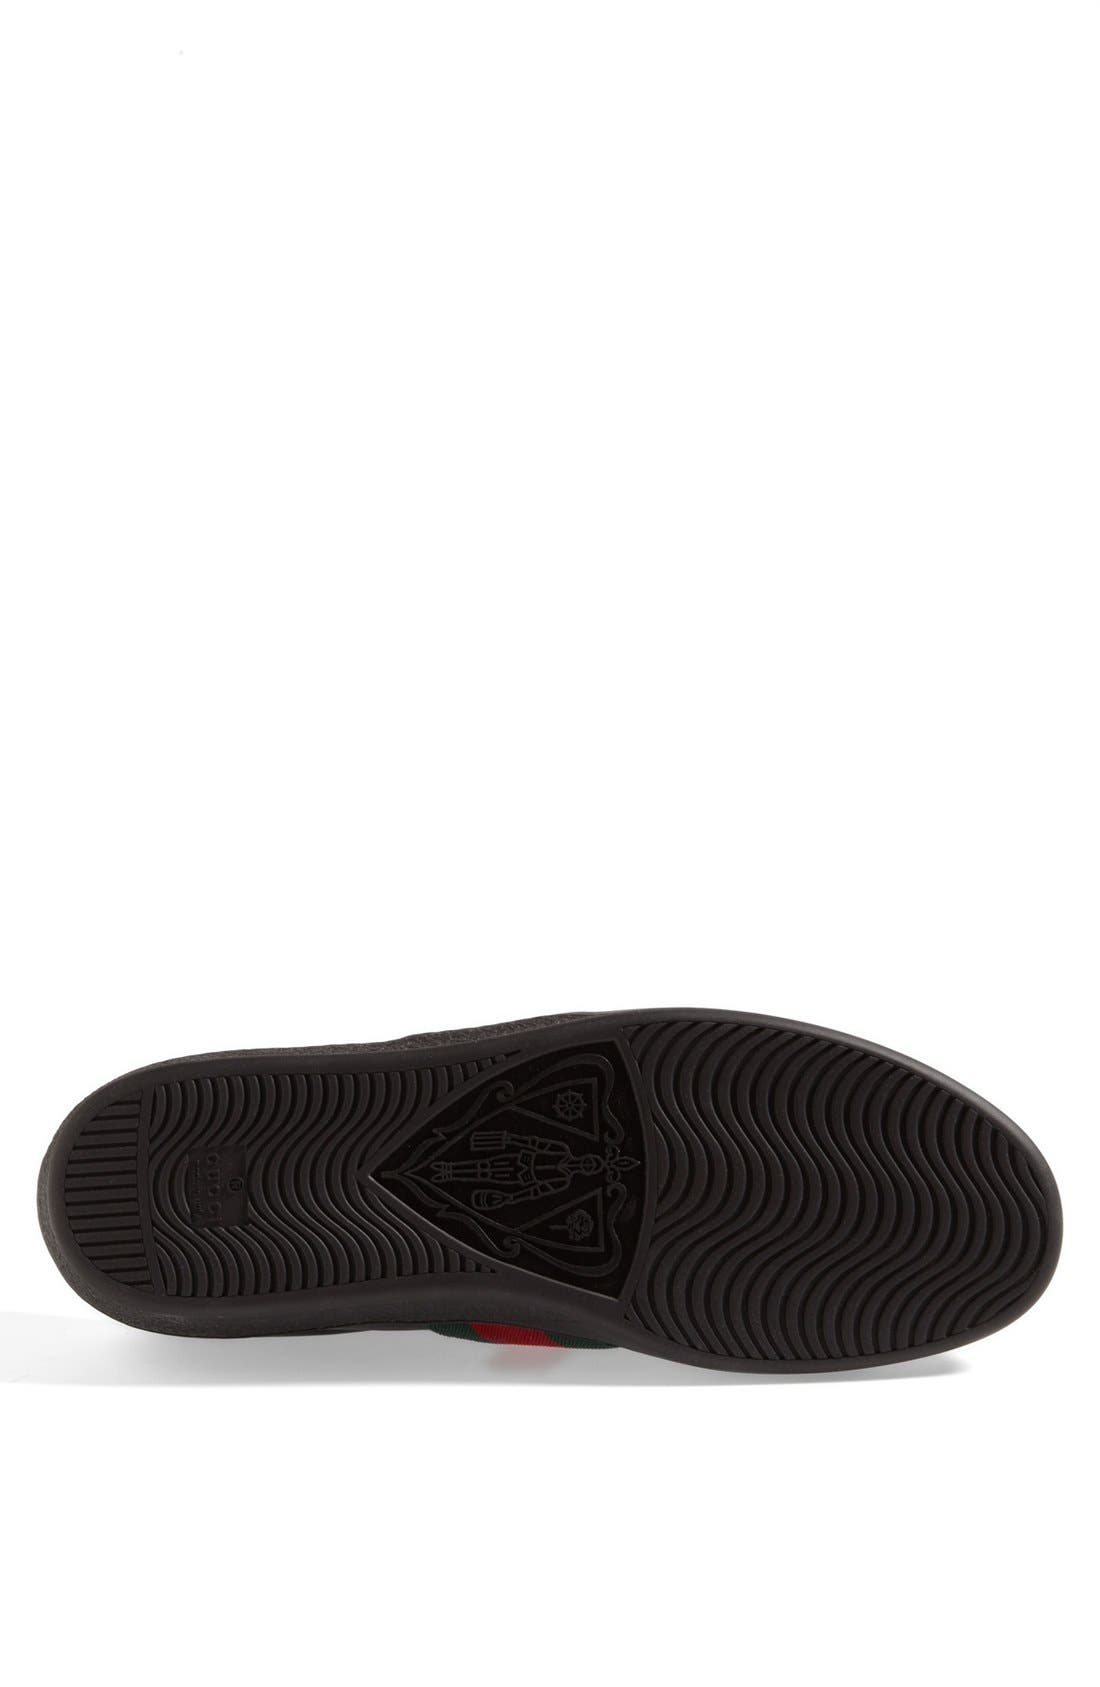 Alternate Image 4  - Gucci 'Brooklyn' Slip-On